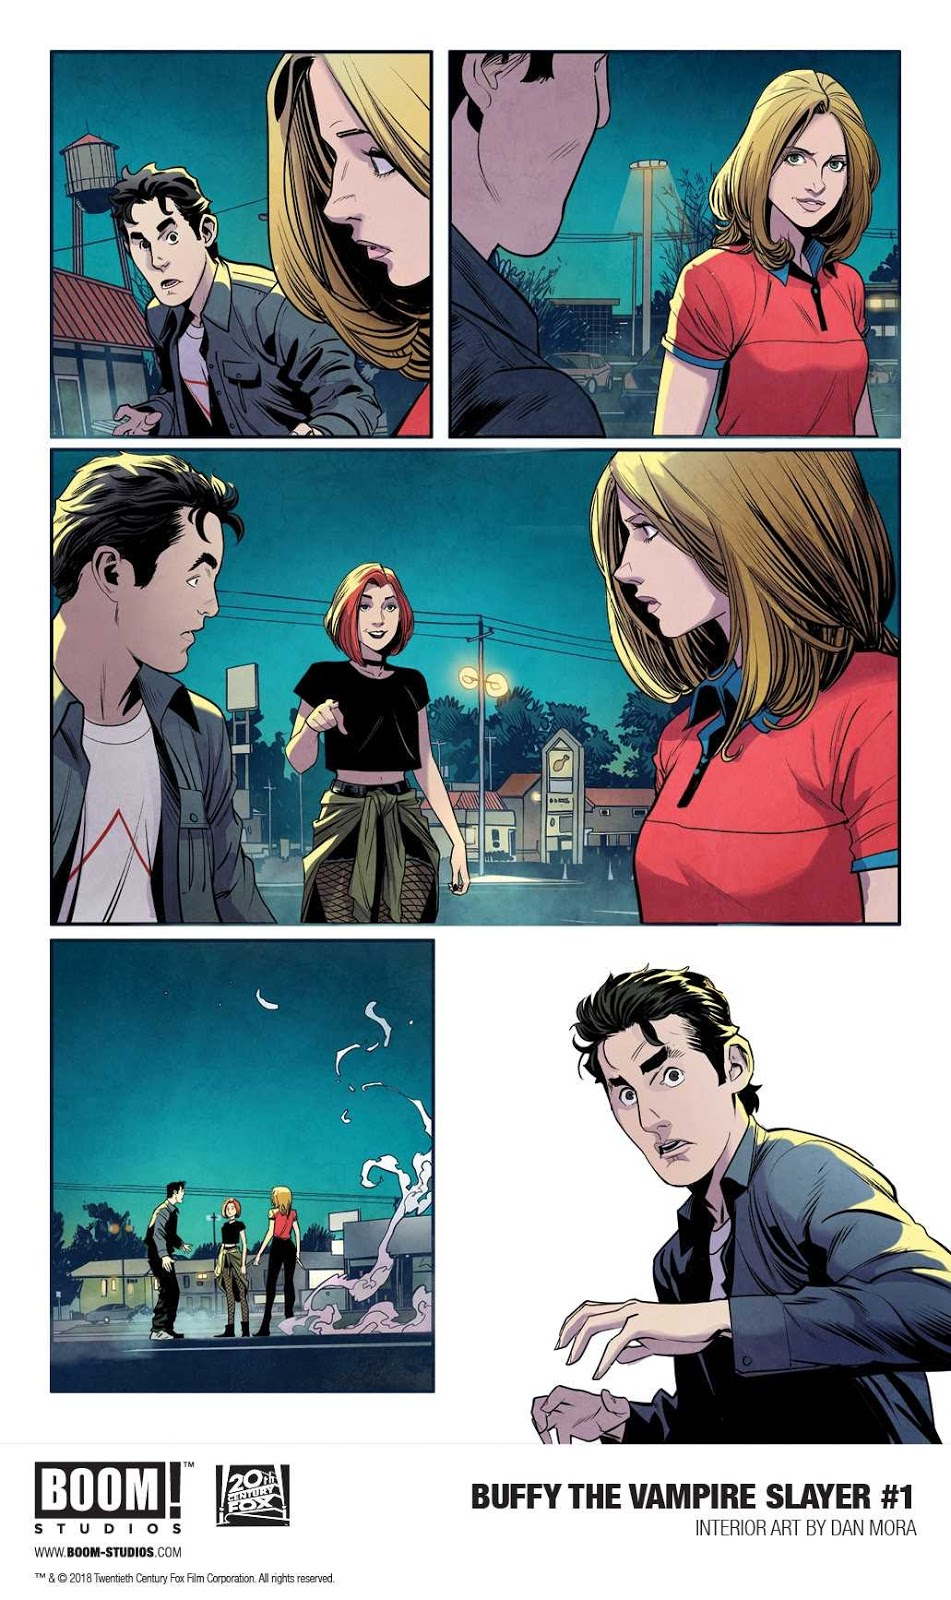 Buffy the Vampire Slayer #1 Preview - 4